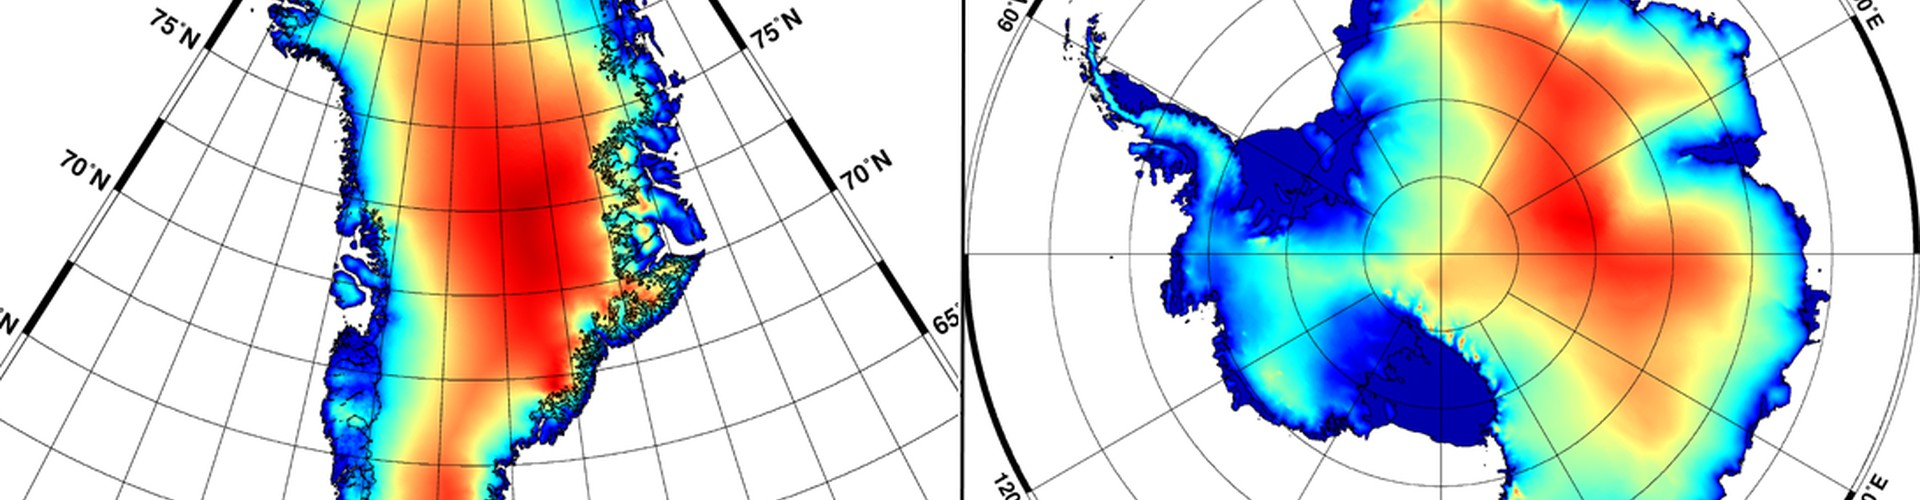 New digital elevation models for Greenland and Antarctica (Credit: Helm et al., The Cryosphere, 2014)